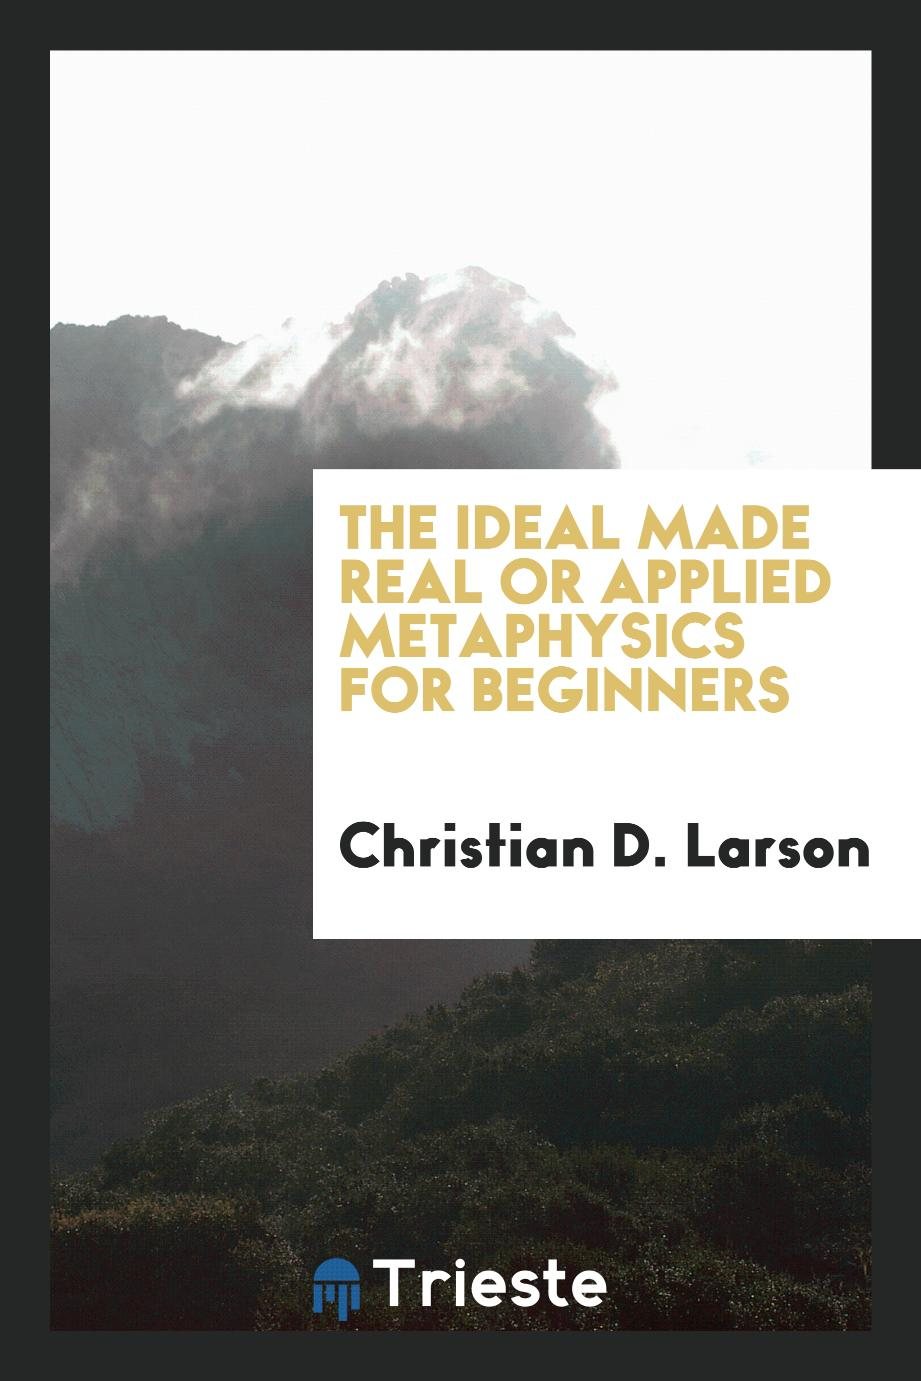 The ideal made real or applied metaphysics for beginners